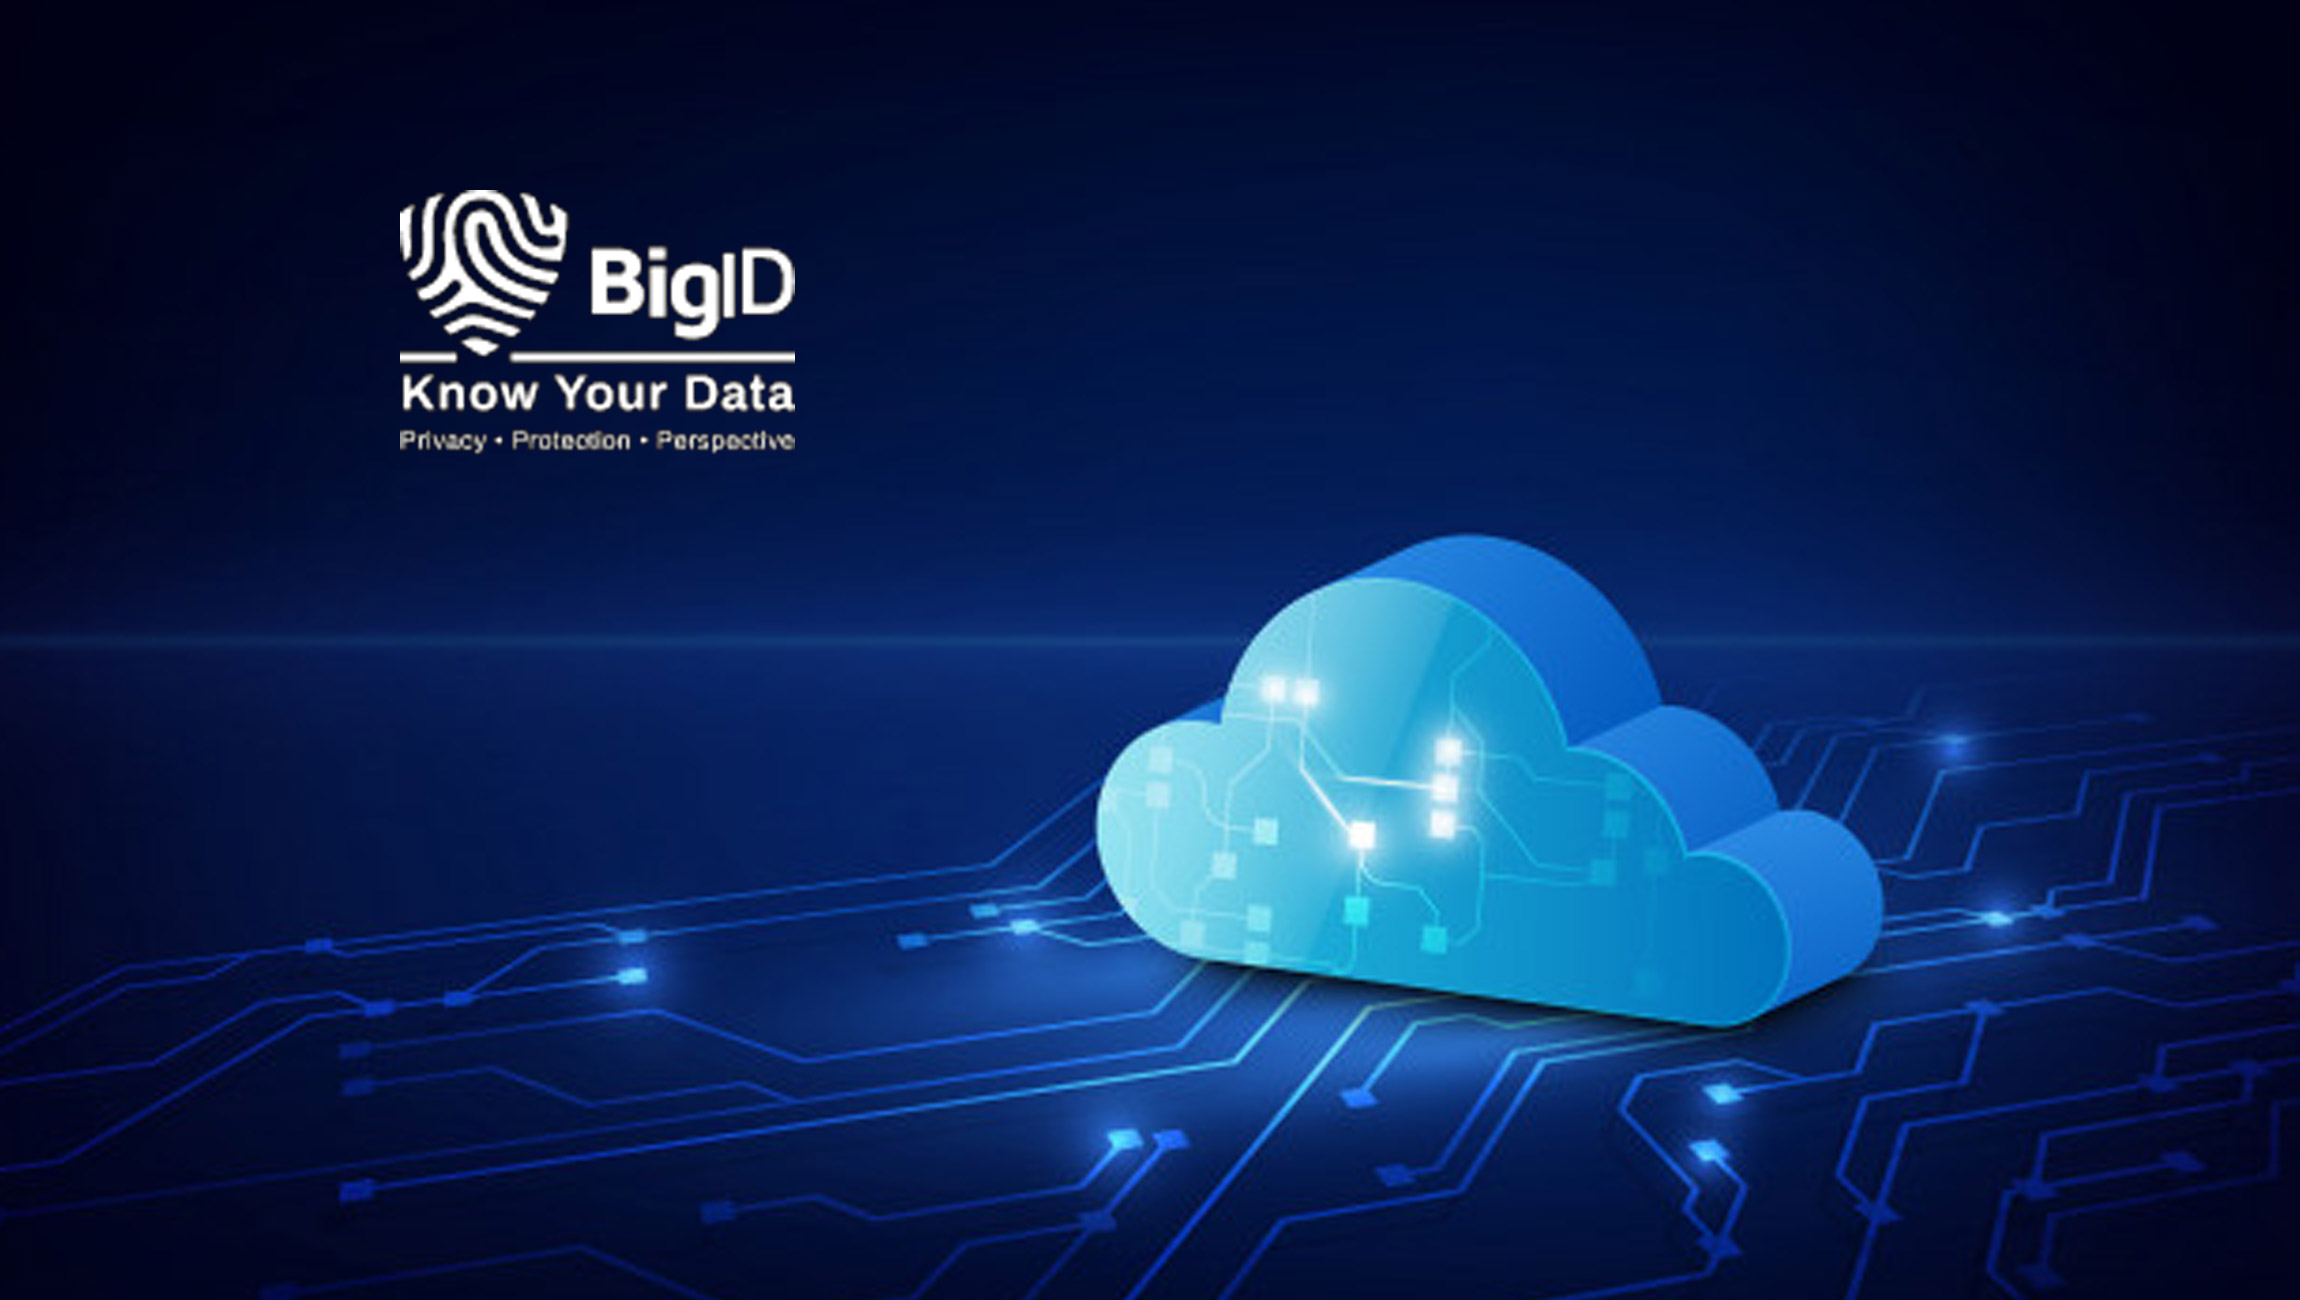 BigID Expands Access Intelligence for Cloud and Data Centers 1